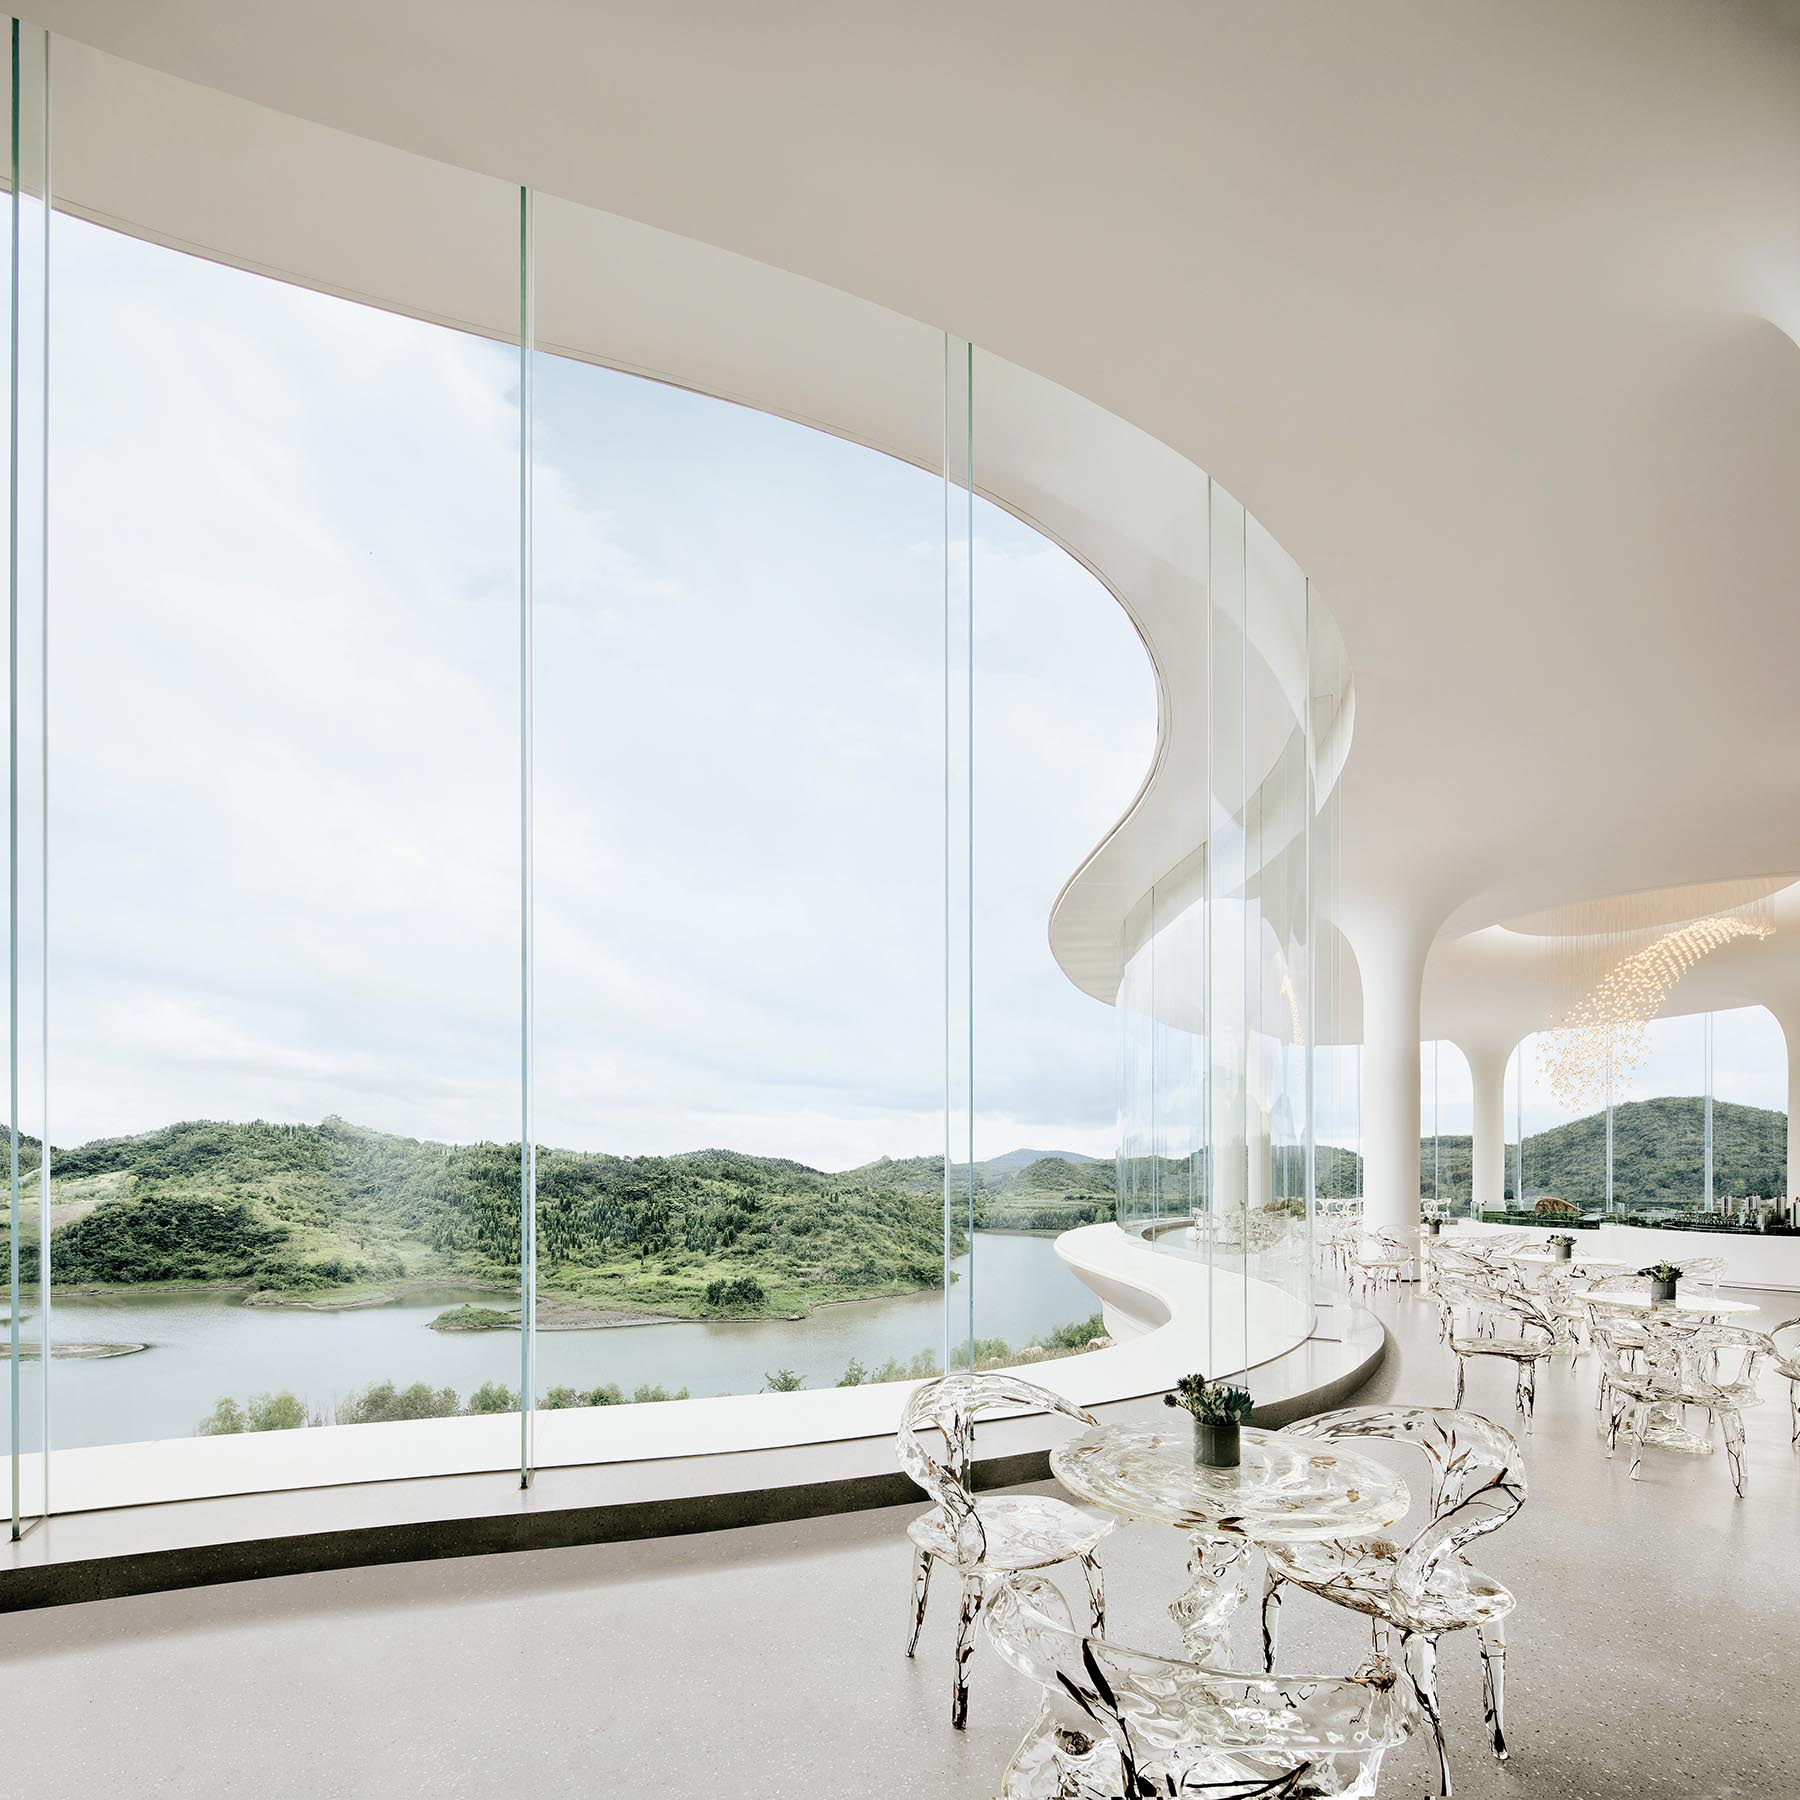 A modern sales center with tall curved glass walls.